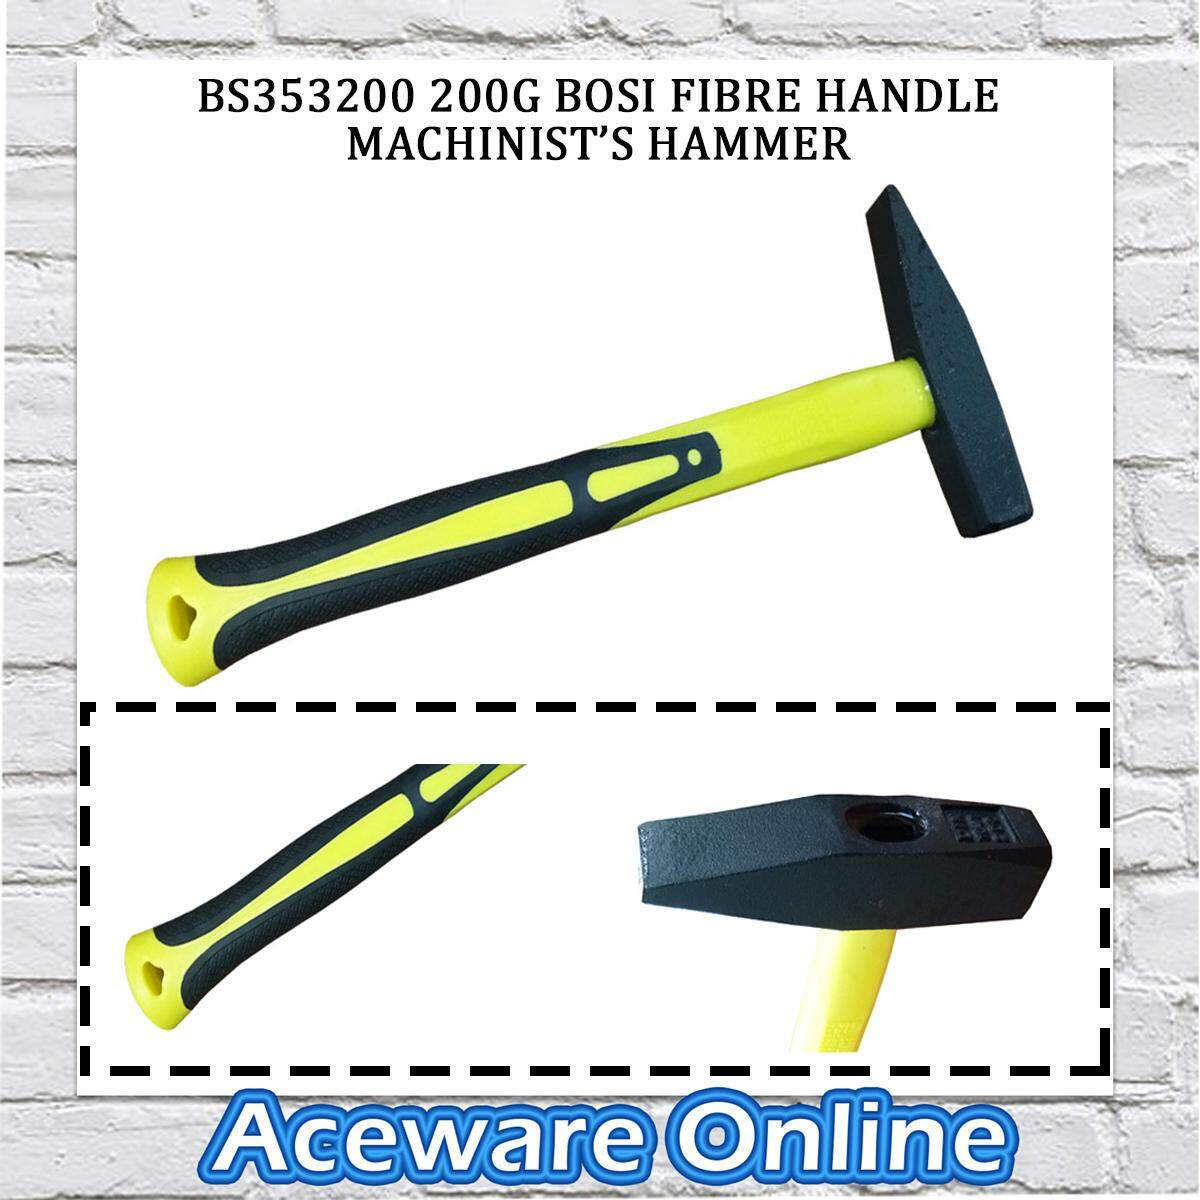 BS353200 200G BOSI FIBRE HANDLE MACHINIST'S HAMMER